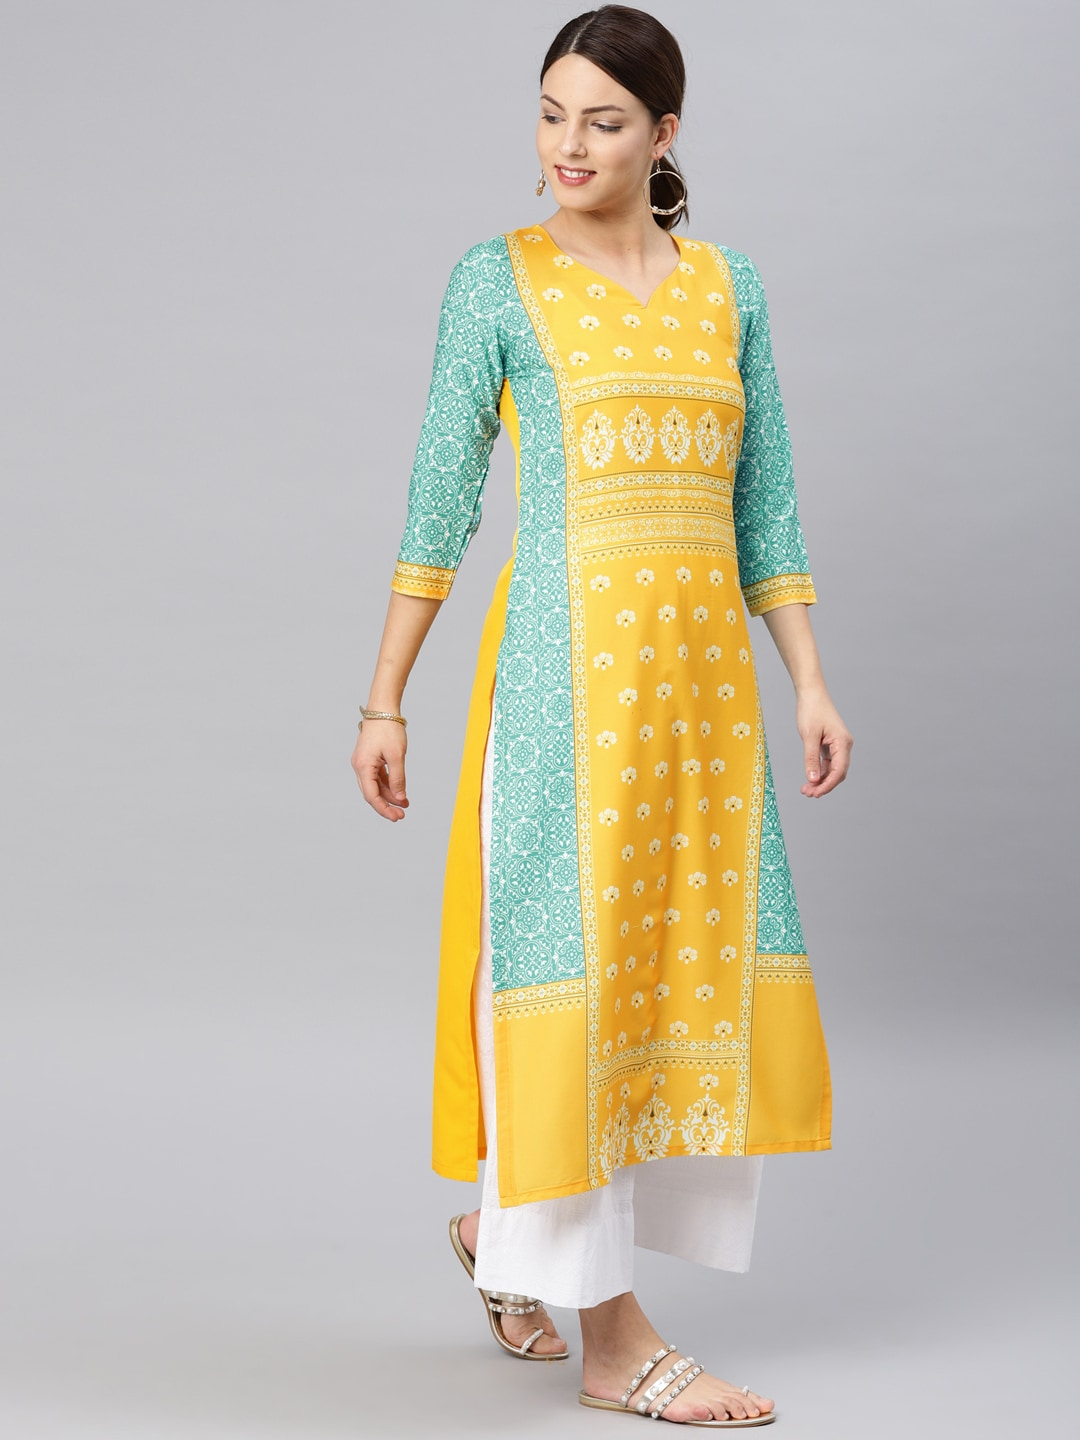 ca131a32ee kurtas price in India May 2019 Specs